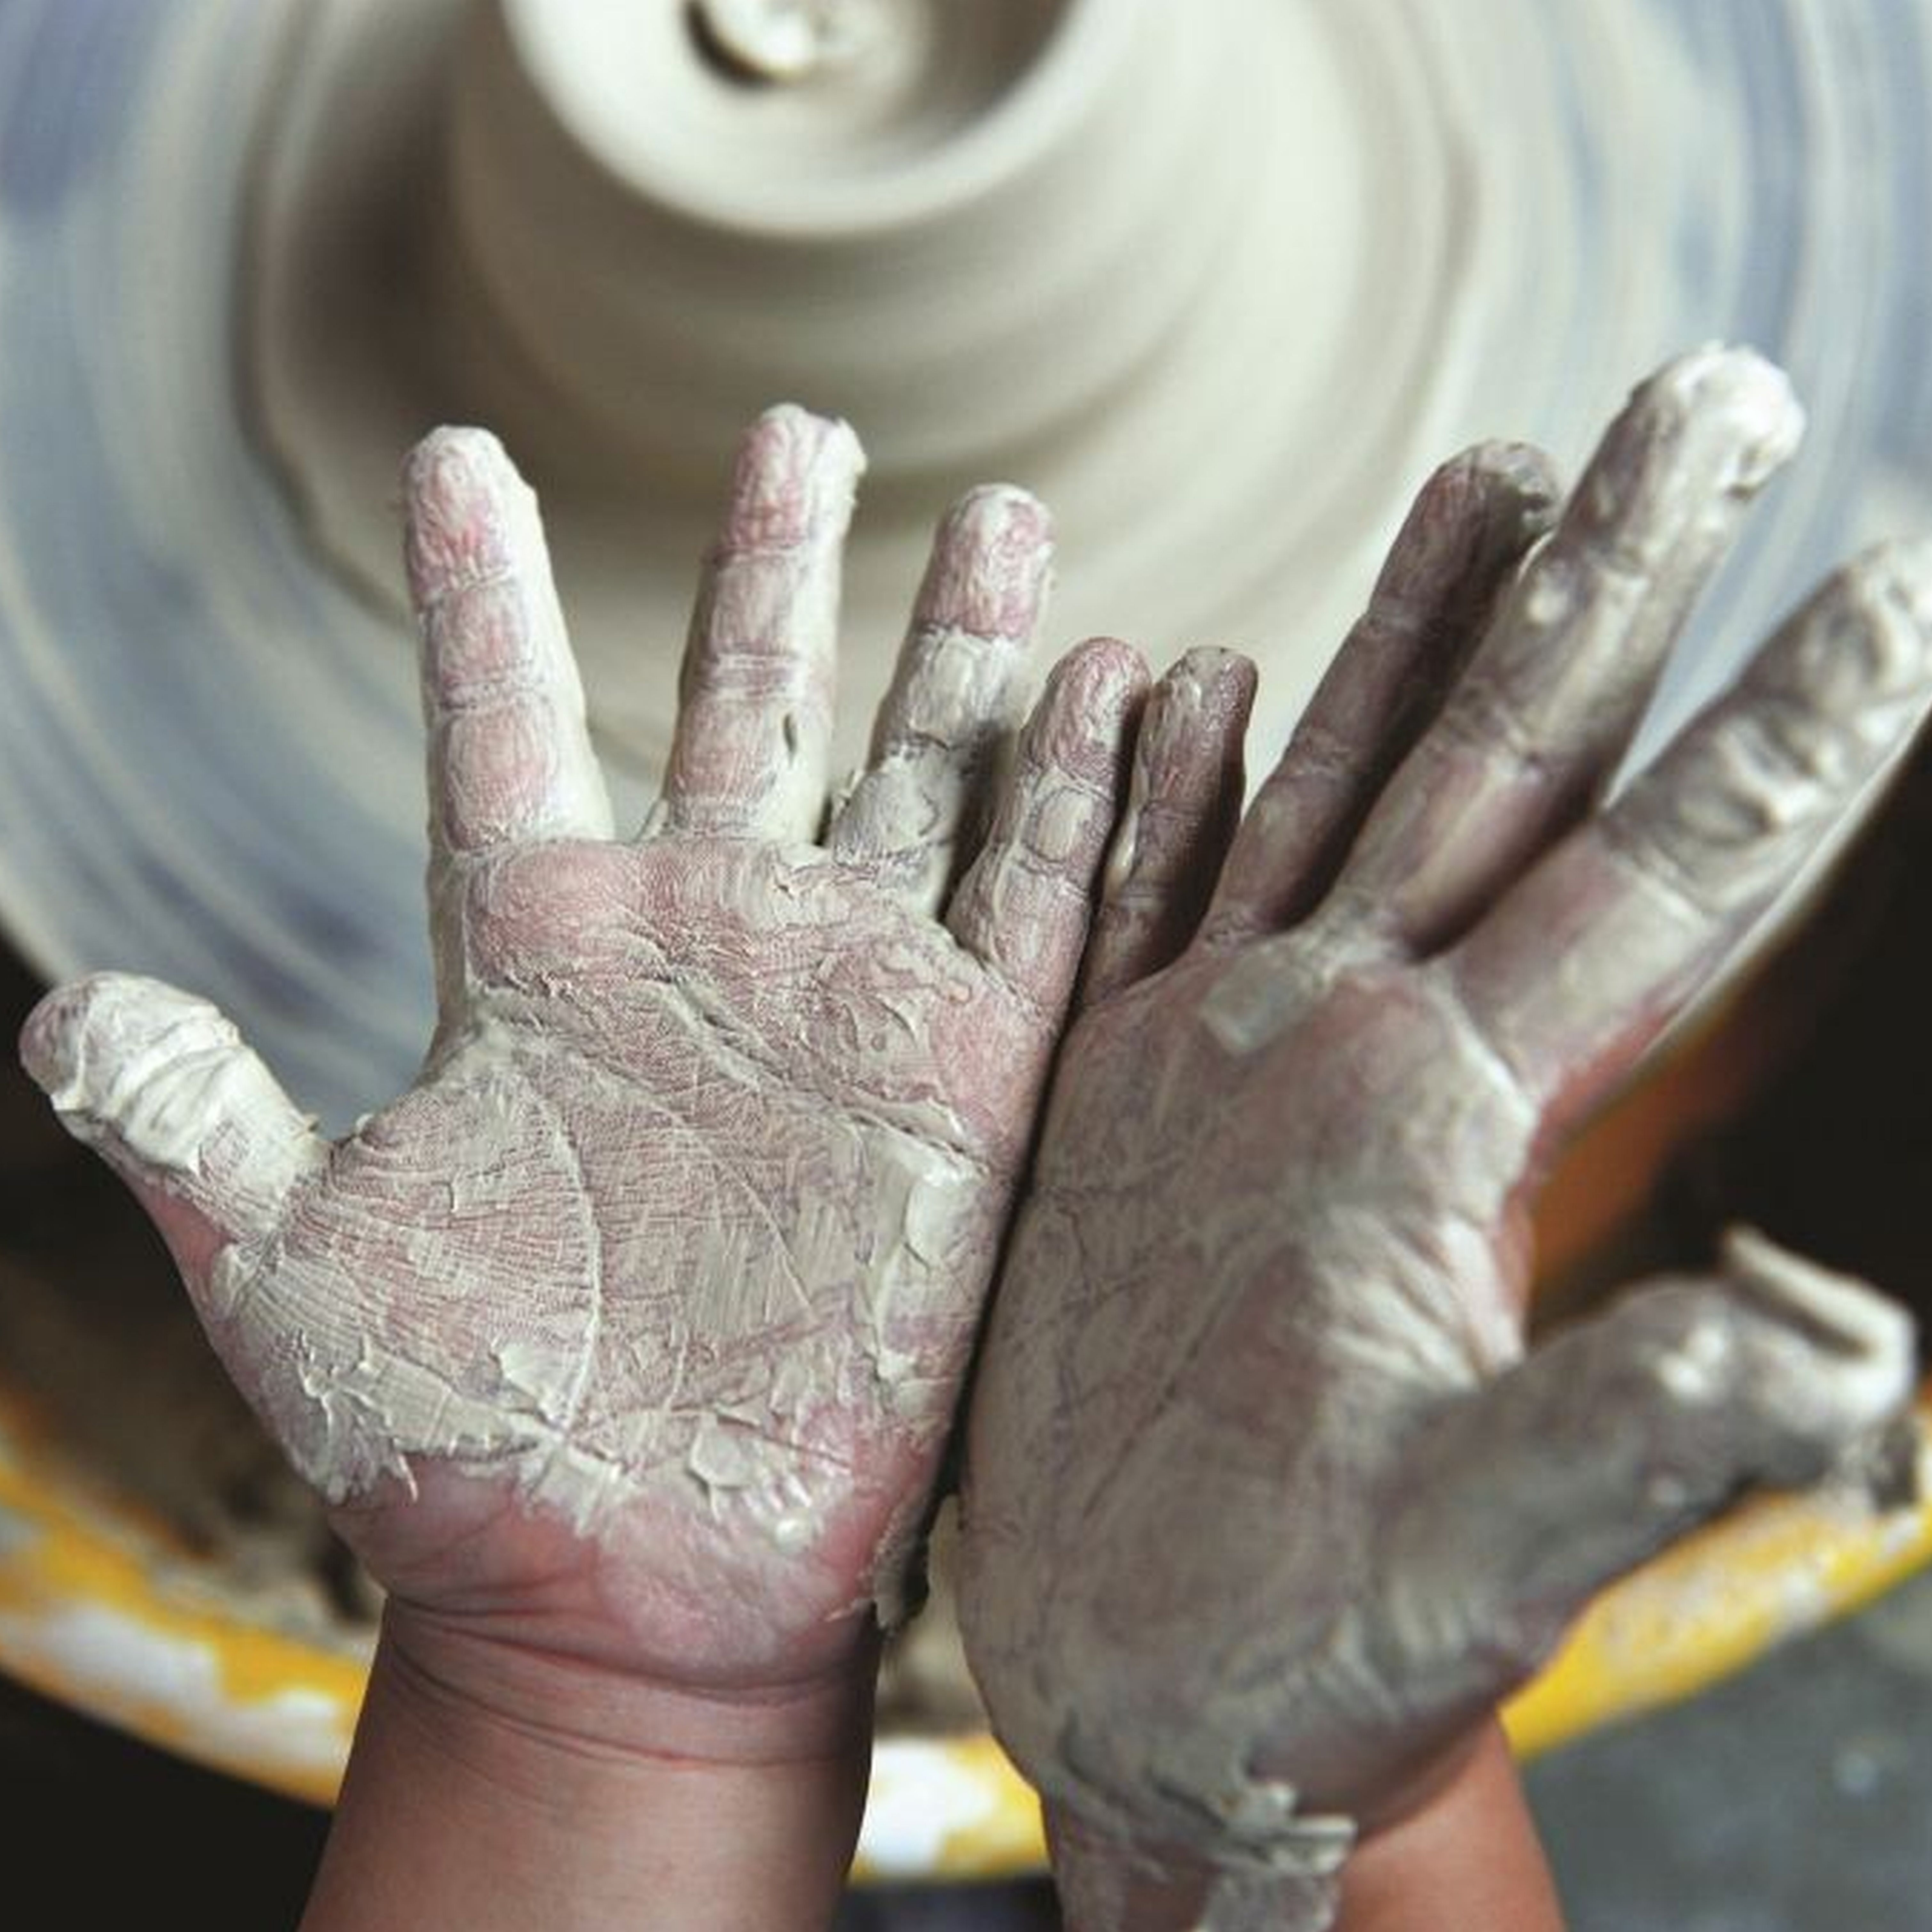 Ceramics | Slab it. Coil it. Throw it. | Discovering Ceramics for 8-12 years